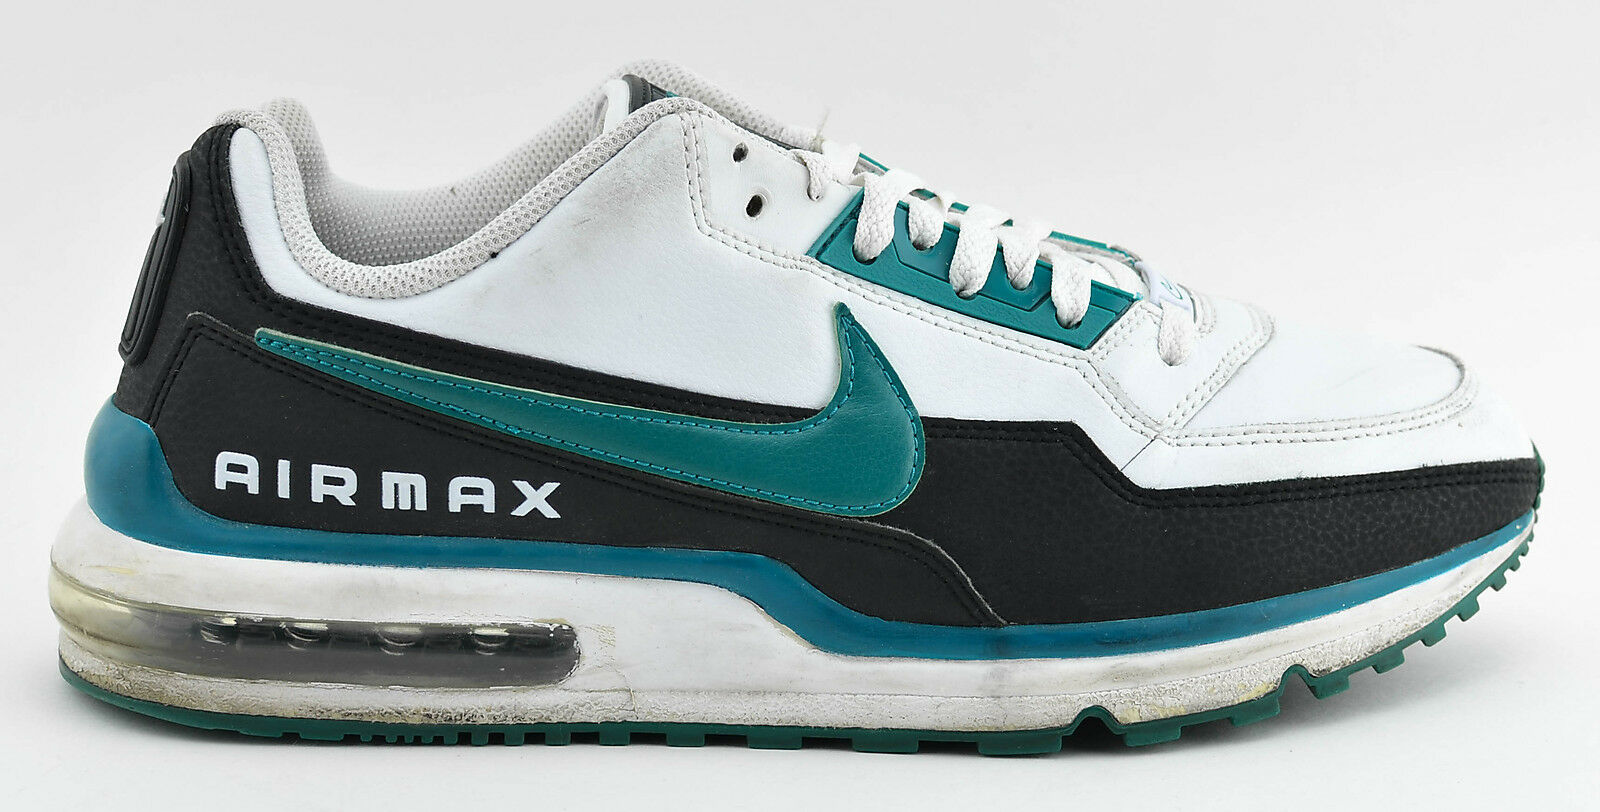 MENS NIKE AIR MAX LTD RUNNING SHOES SIZE 11.5 WHITE BLACK TURQUOISE 407979 149